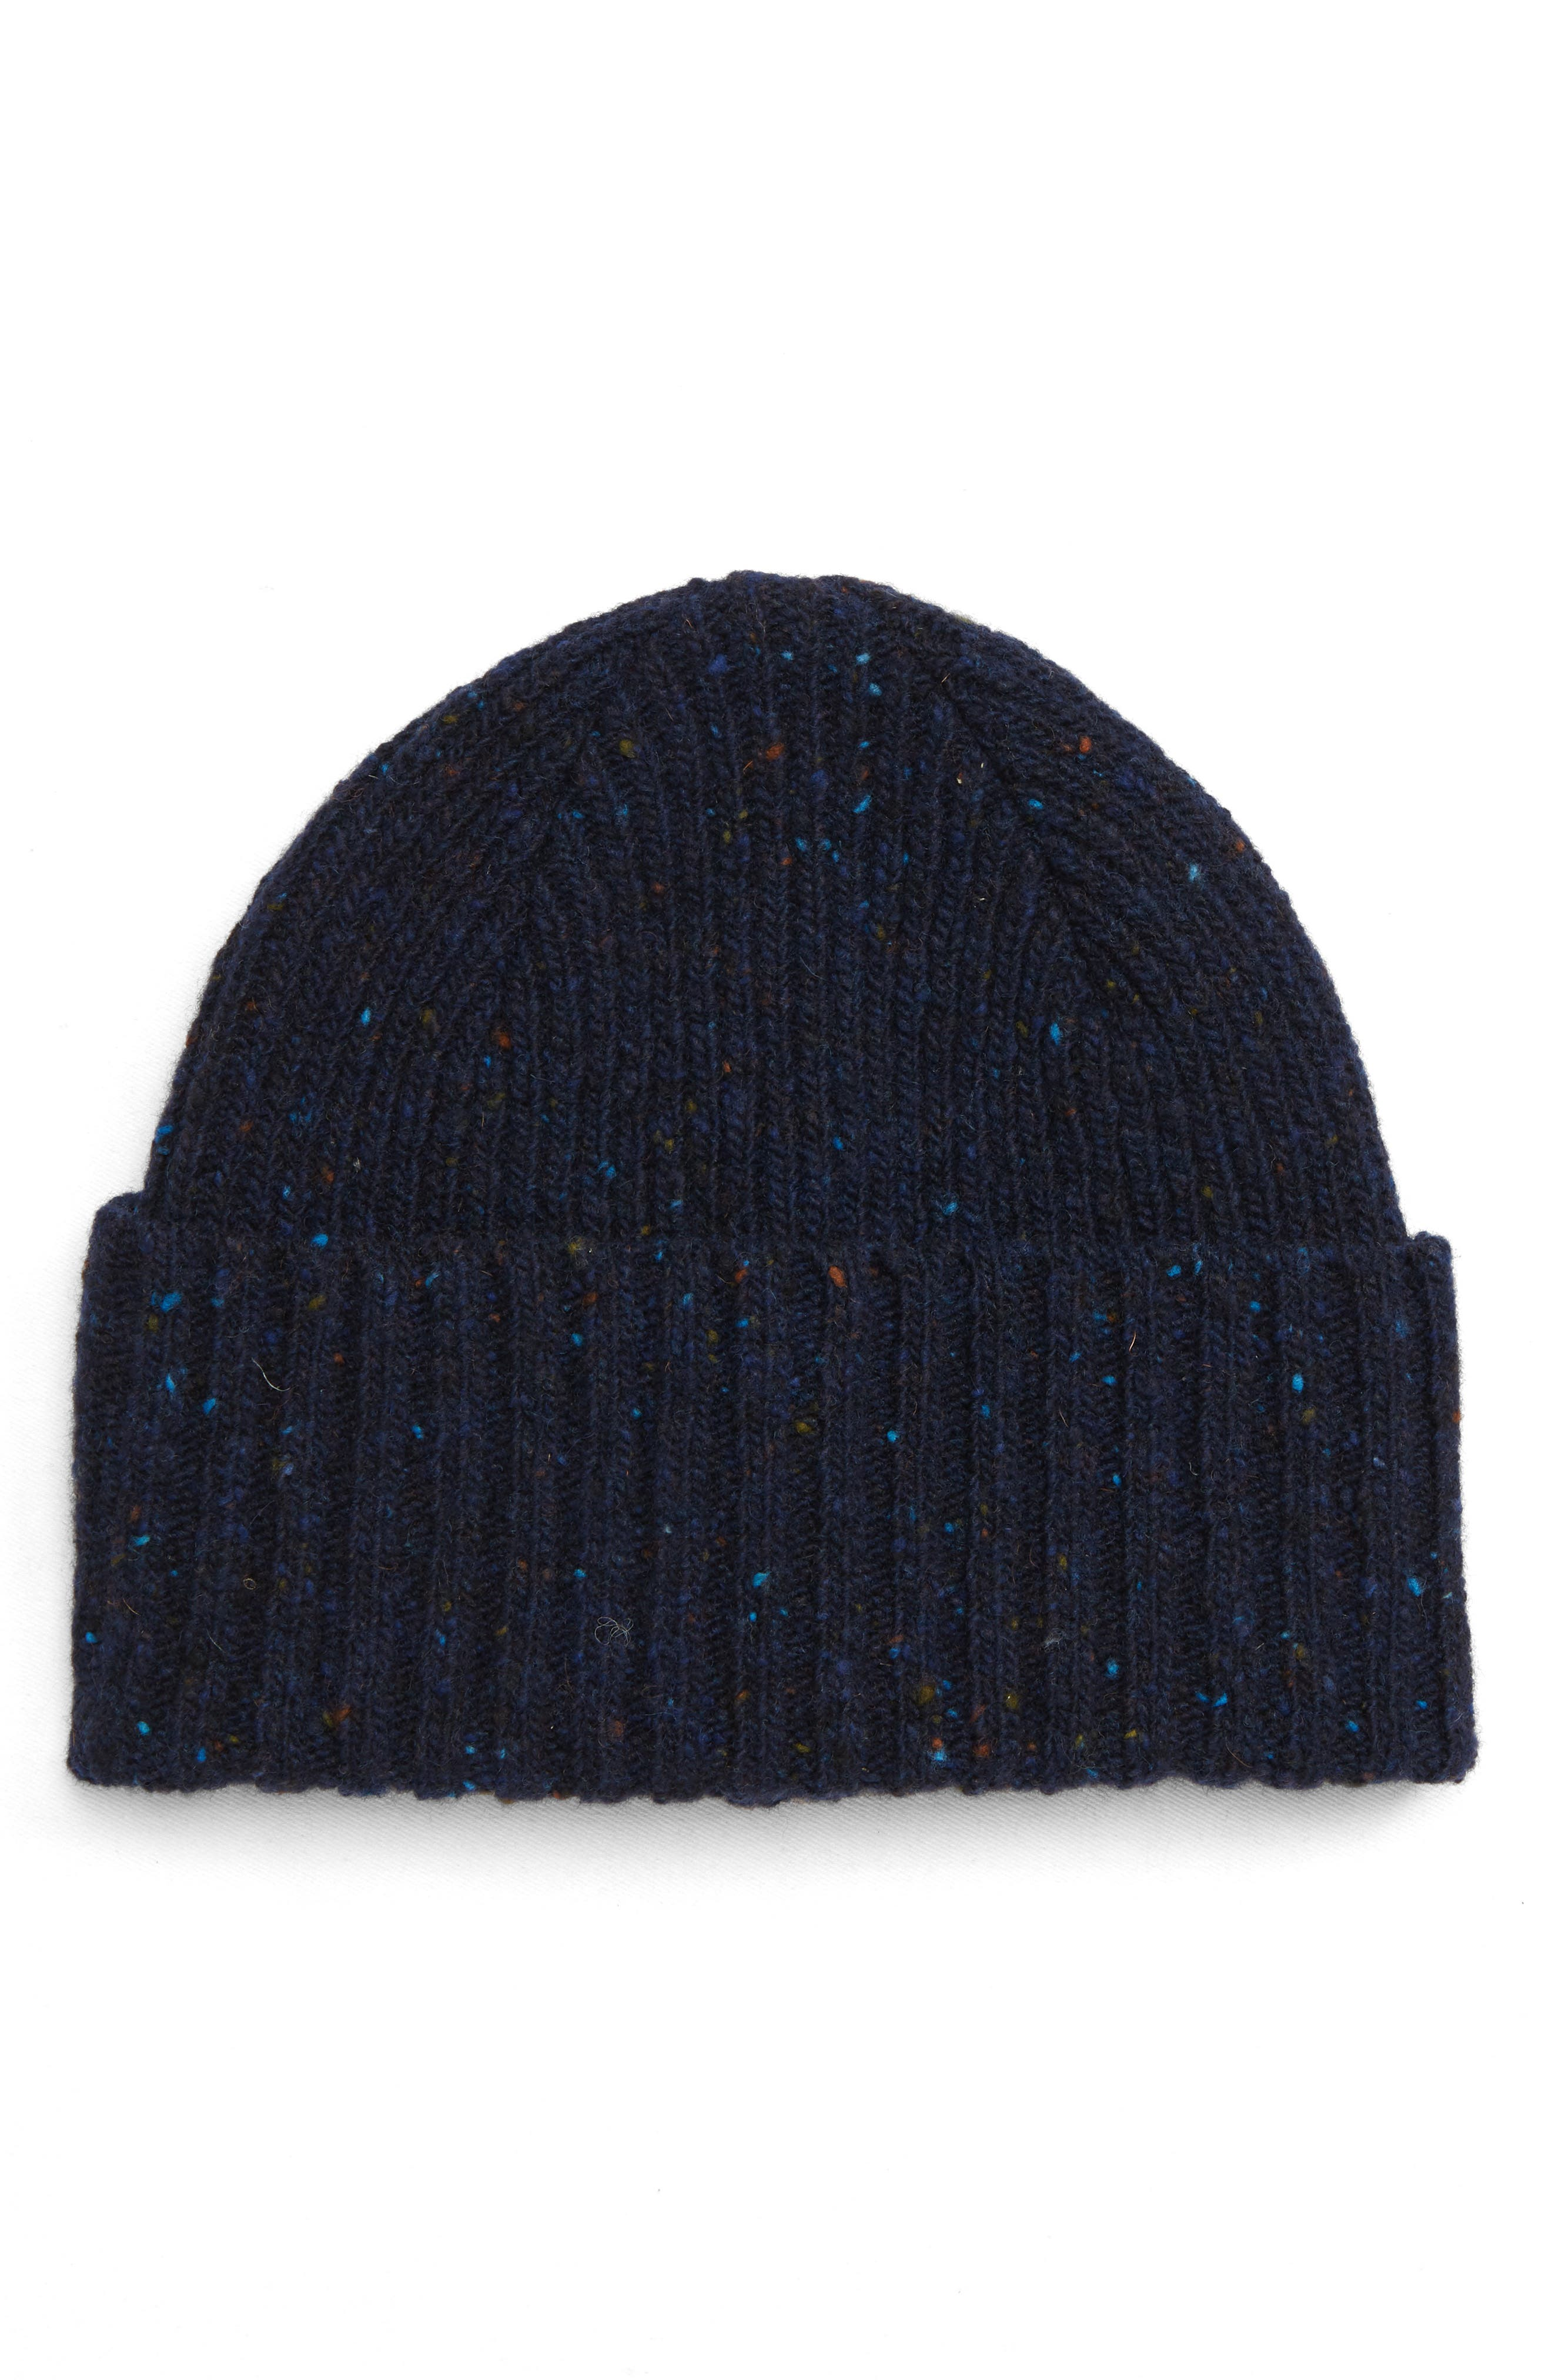 DRAKE'S Drakes Donegal Wool Beanie - Blue in Navy